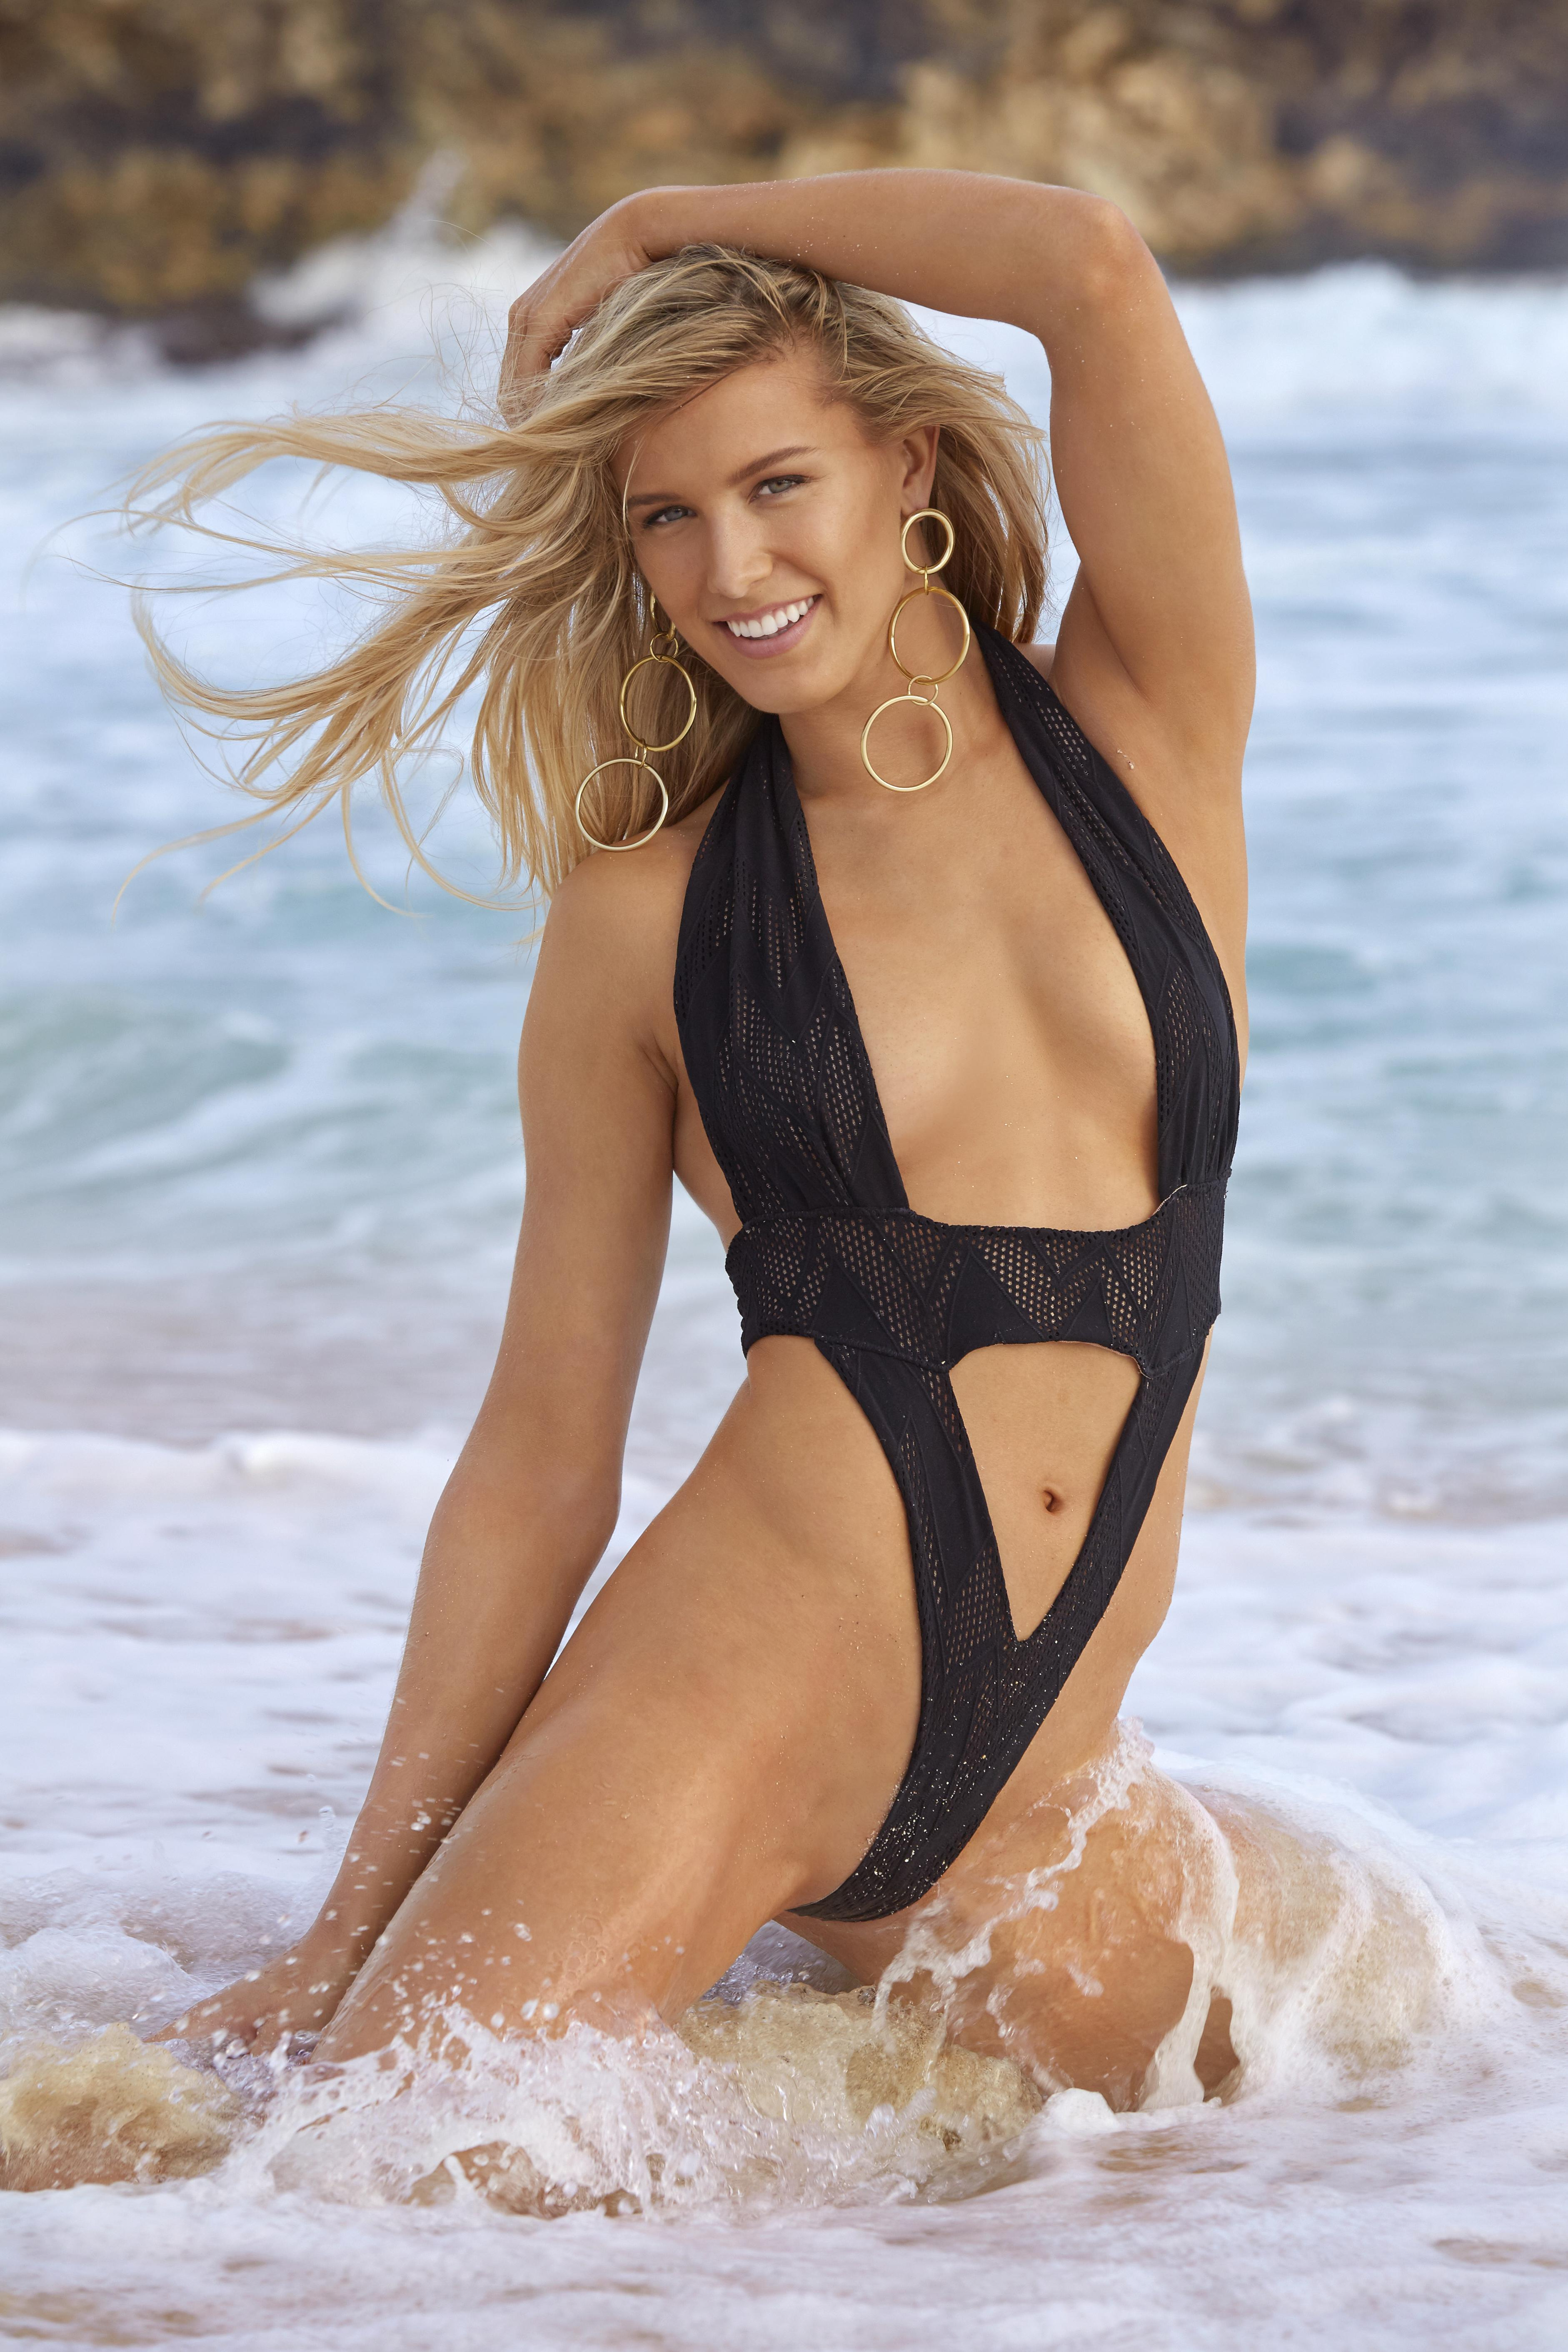 Tennis star Genie Bouchard looks ace as she frolics in the surf for Sports Illustrated